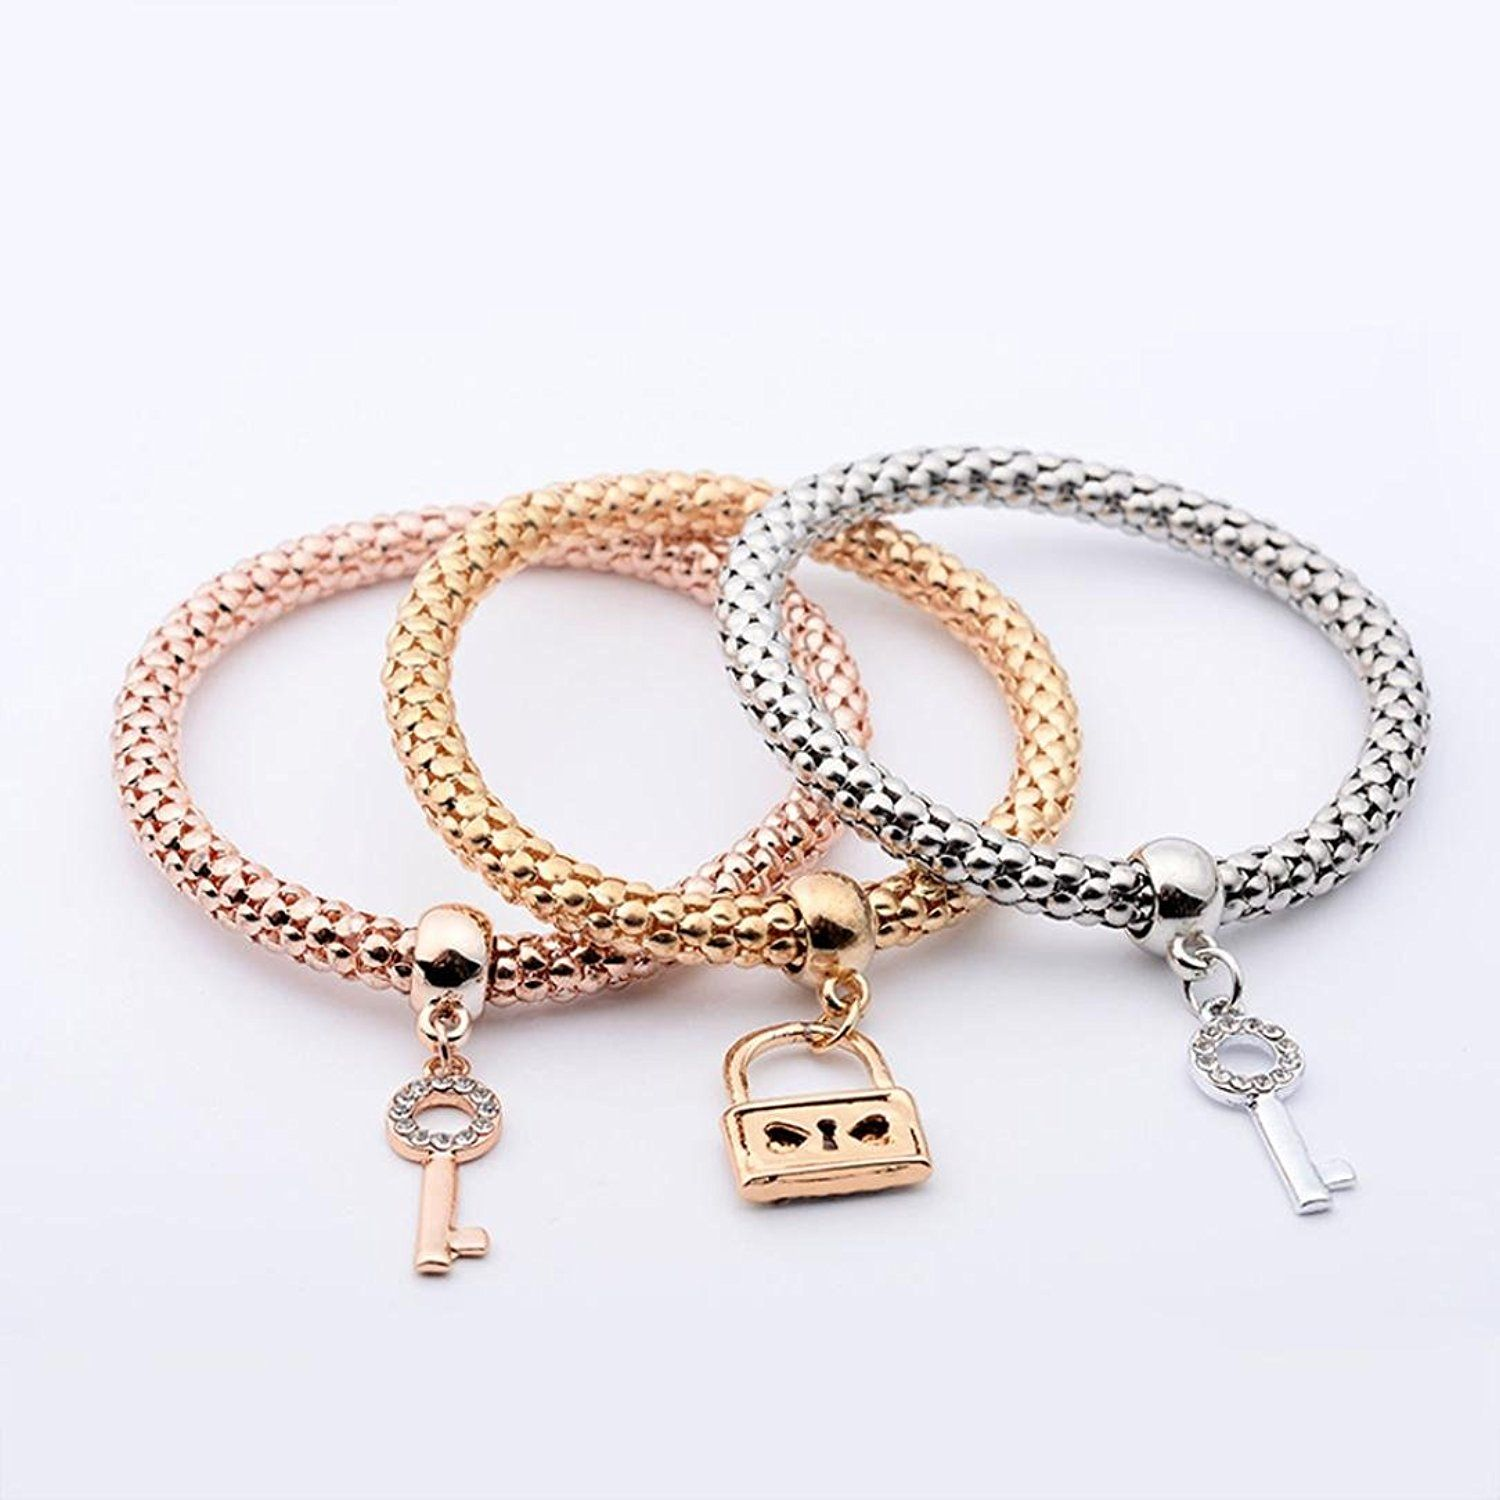 Franterd 3pcs women charm pendant bracelet fashion multilayer bangle franterd 3pcs women charm pendant bracelet fashion multilayer bangle jewelry gift more info could aloadofball Images